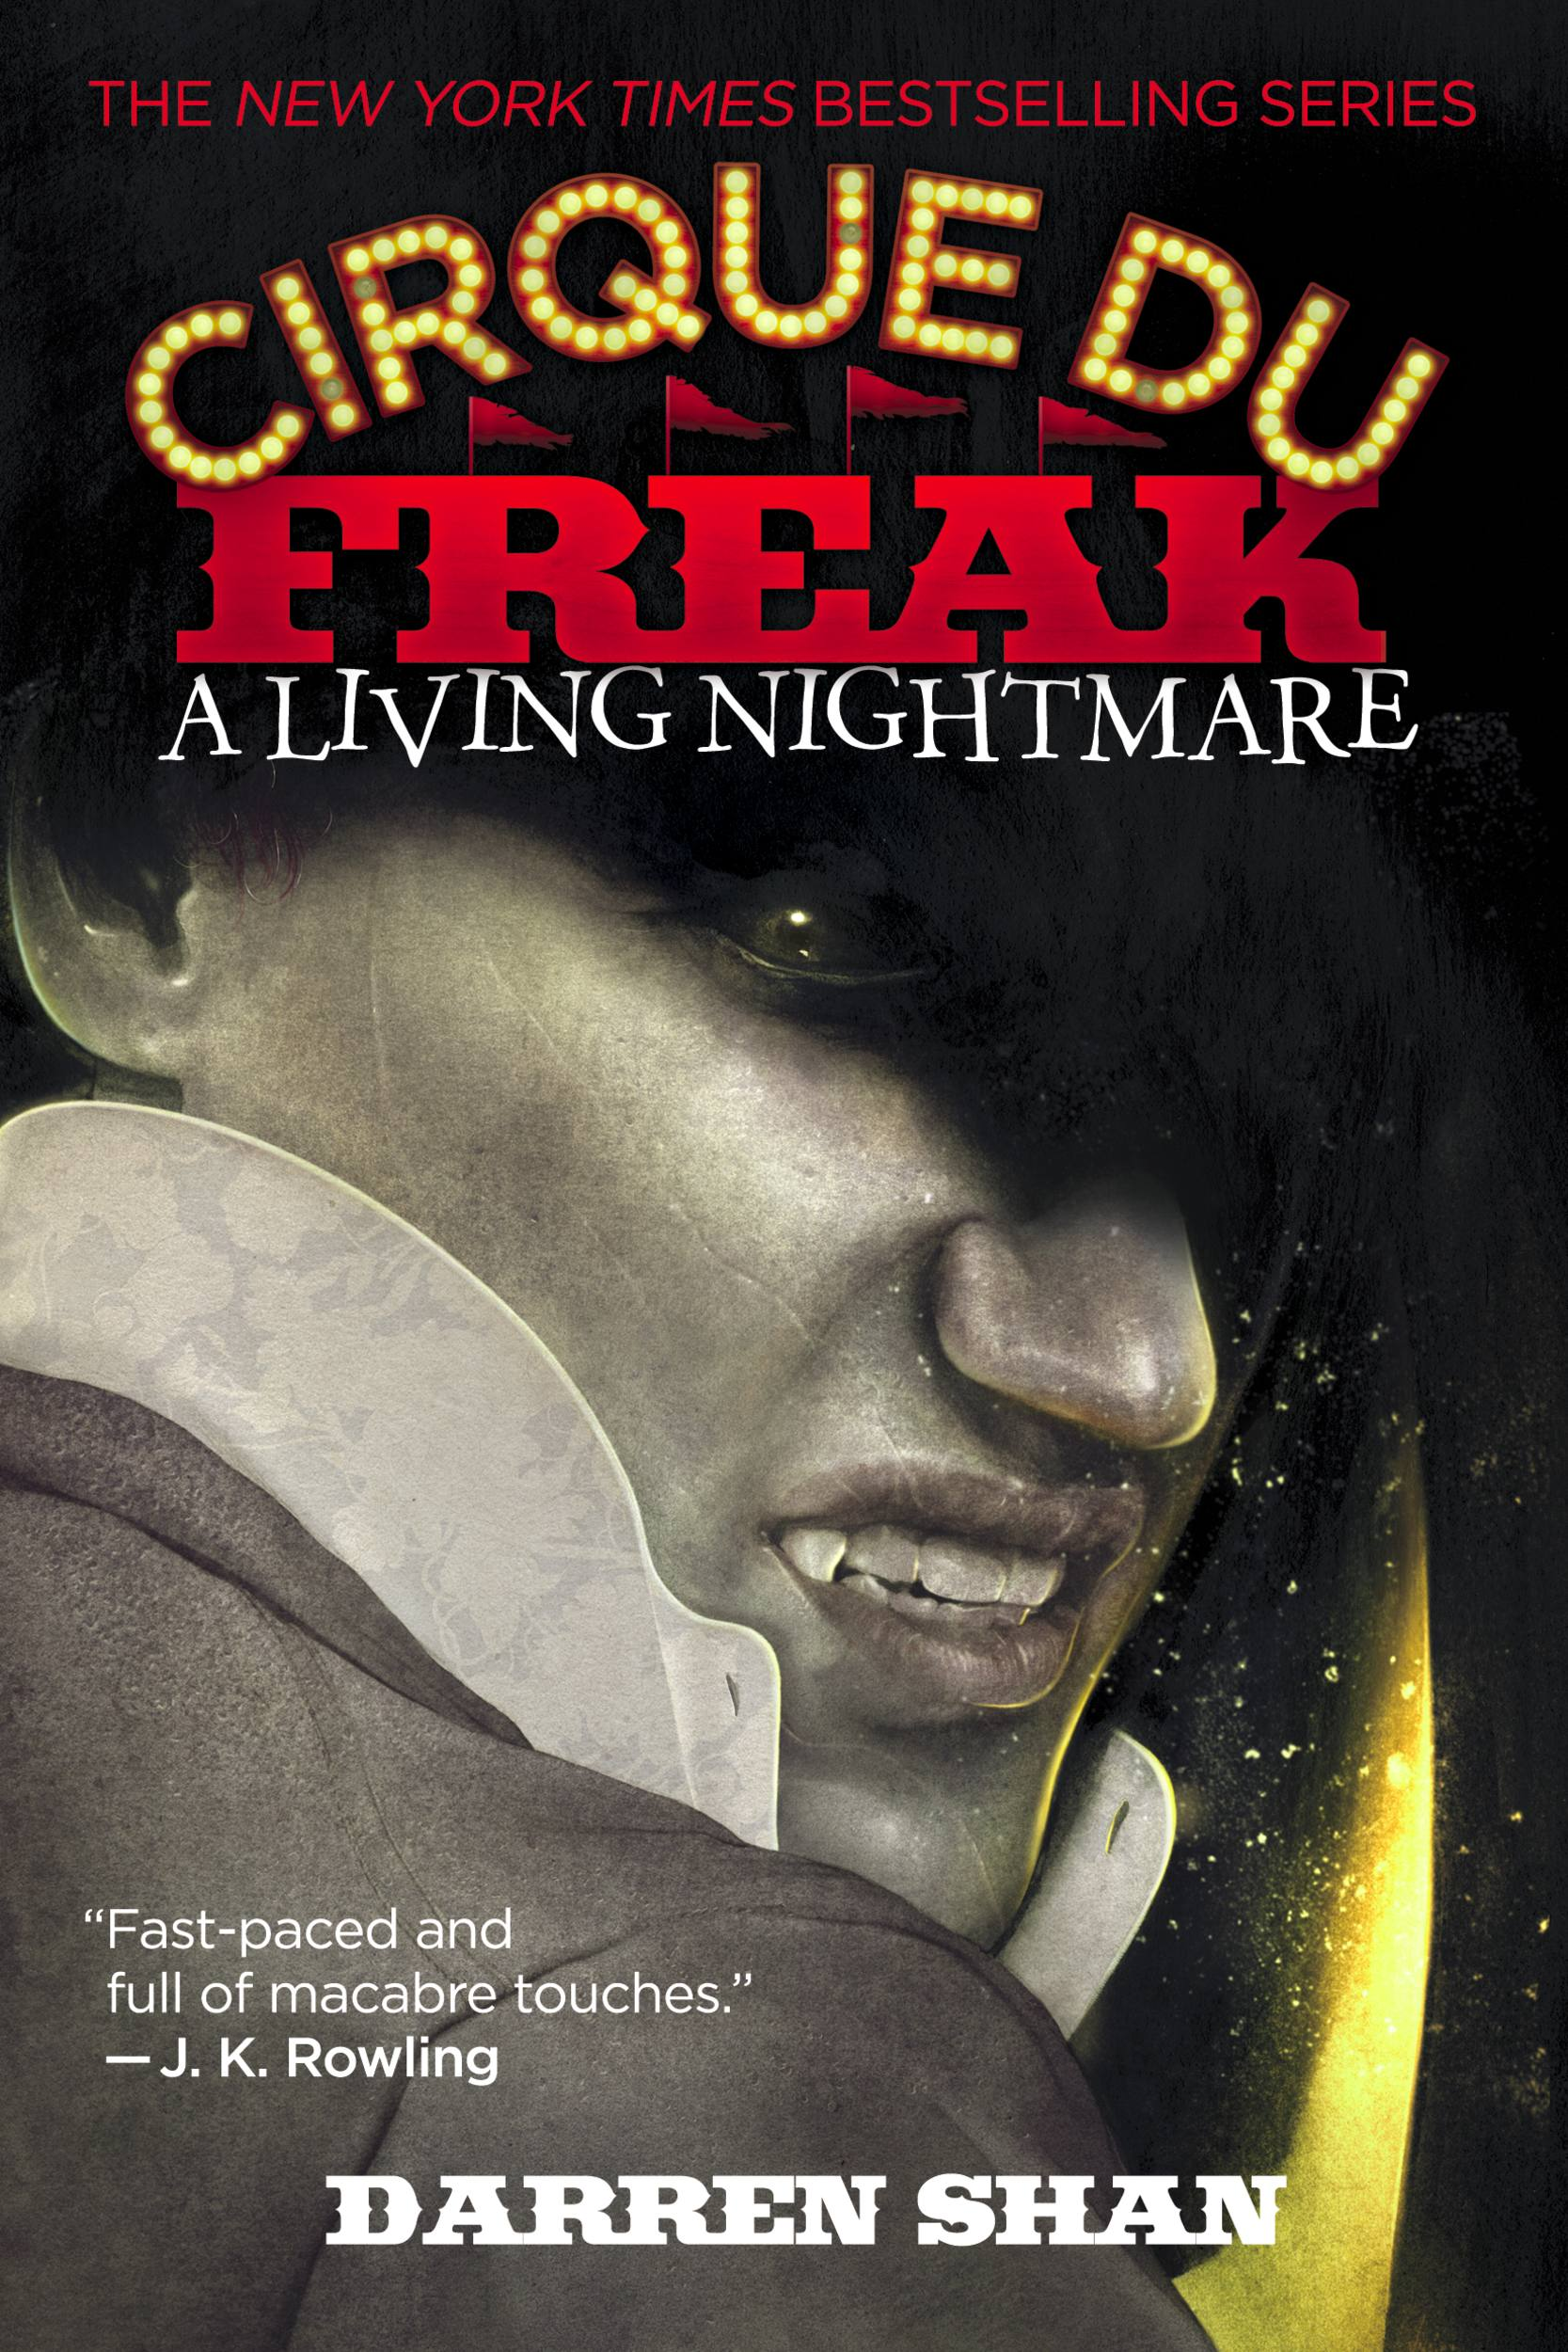 Cirque Du Freak #1: A Living Nightmare Book 1 in the Saga of Darren Shan